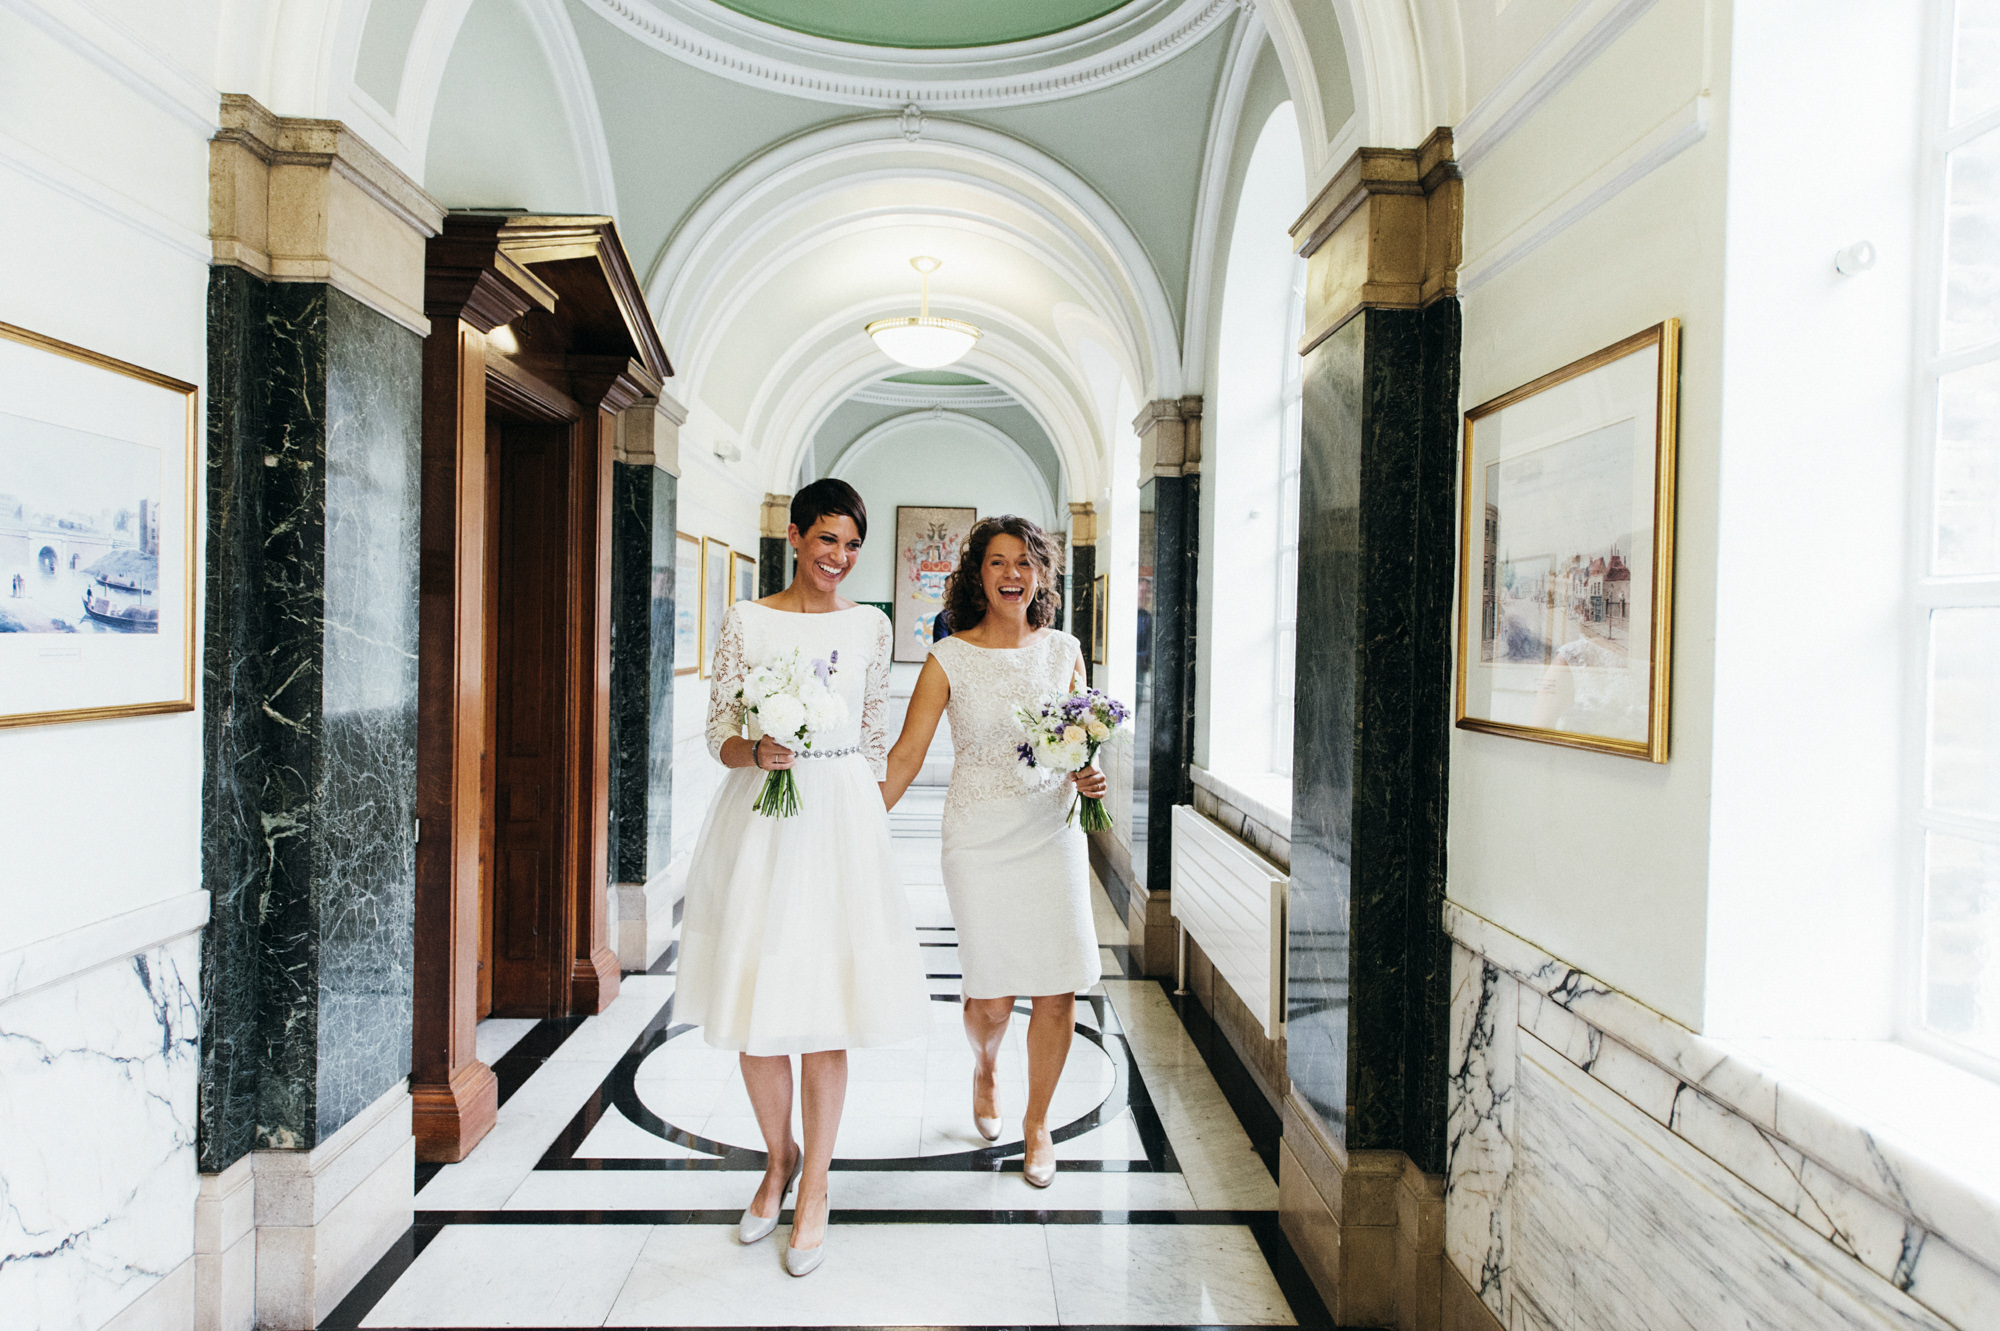 Just married - lesbian brides - gay wedding The Roost Dalston wedding - quirky London wedding photographer © Babb Photo